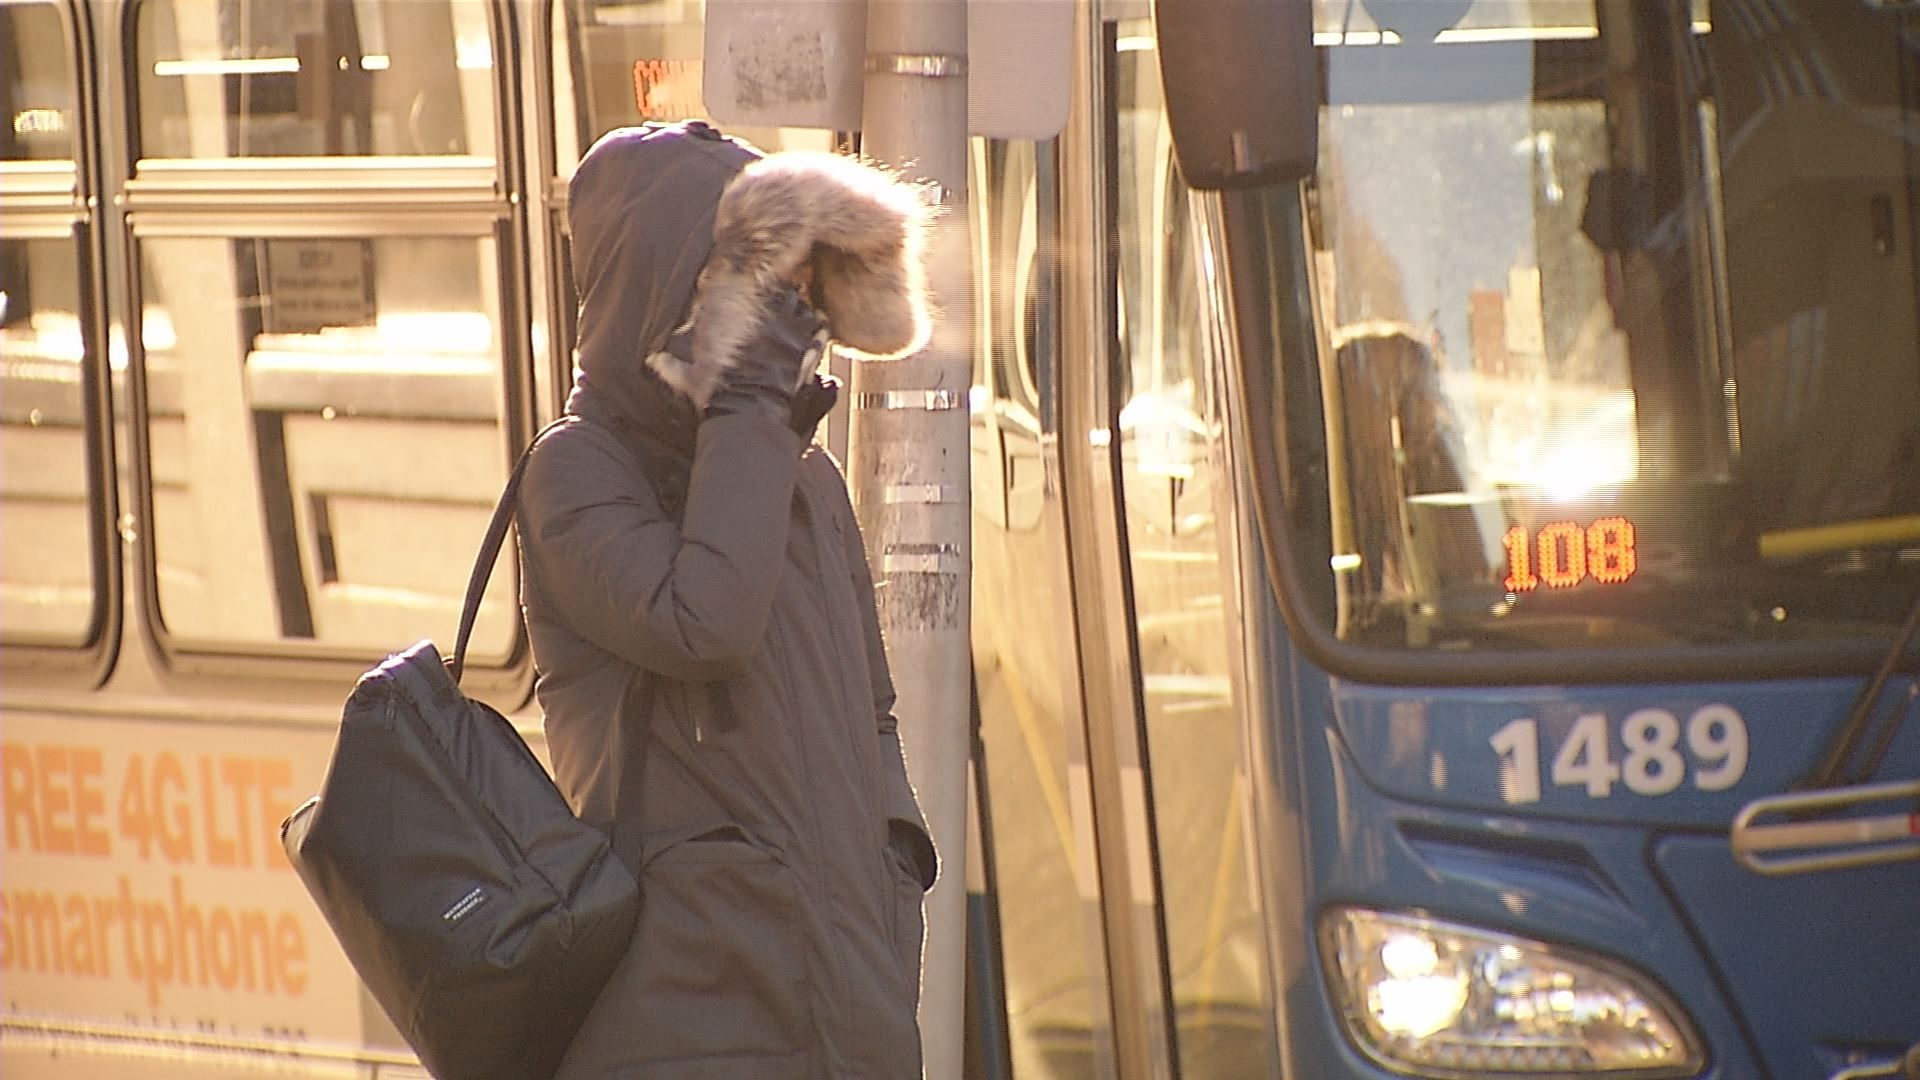 People are dealing with the brutal cold after an unusually warm start to winter.